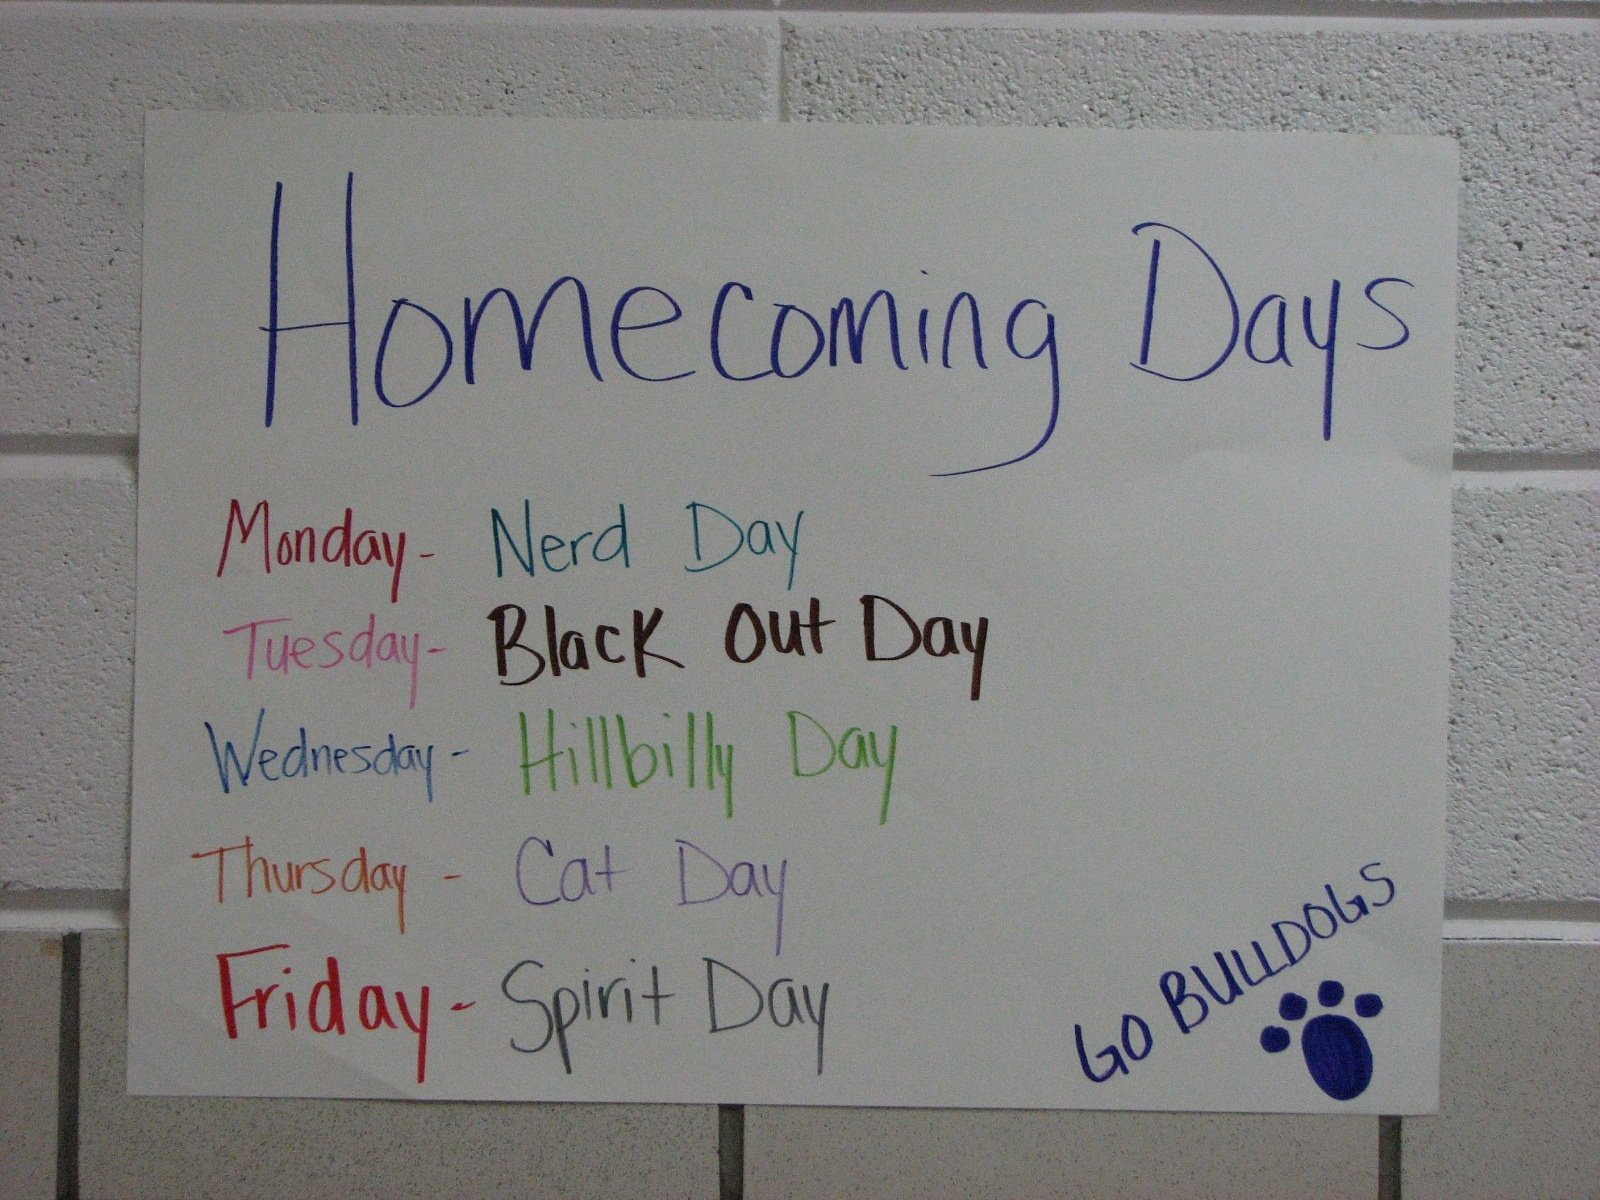 10 Perfect Homecoming Week Dress Up Ideas mr mallorys stuff homecoming dress up days next week 2020